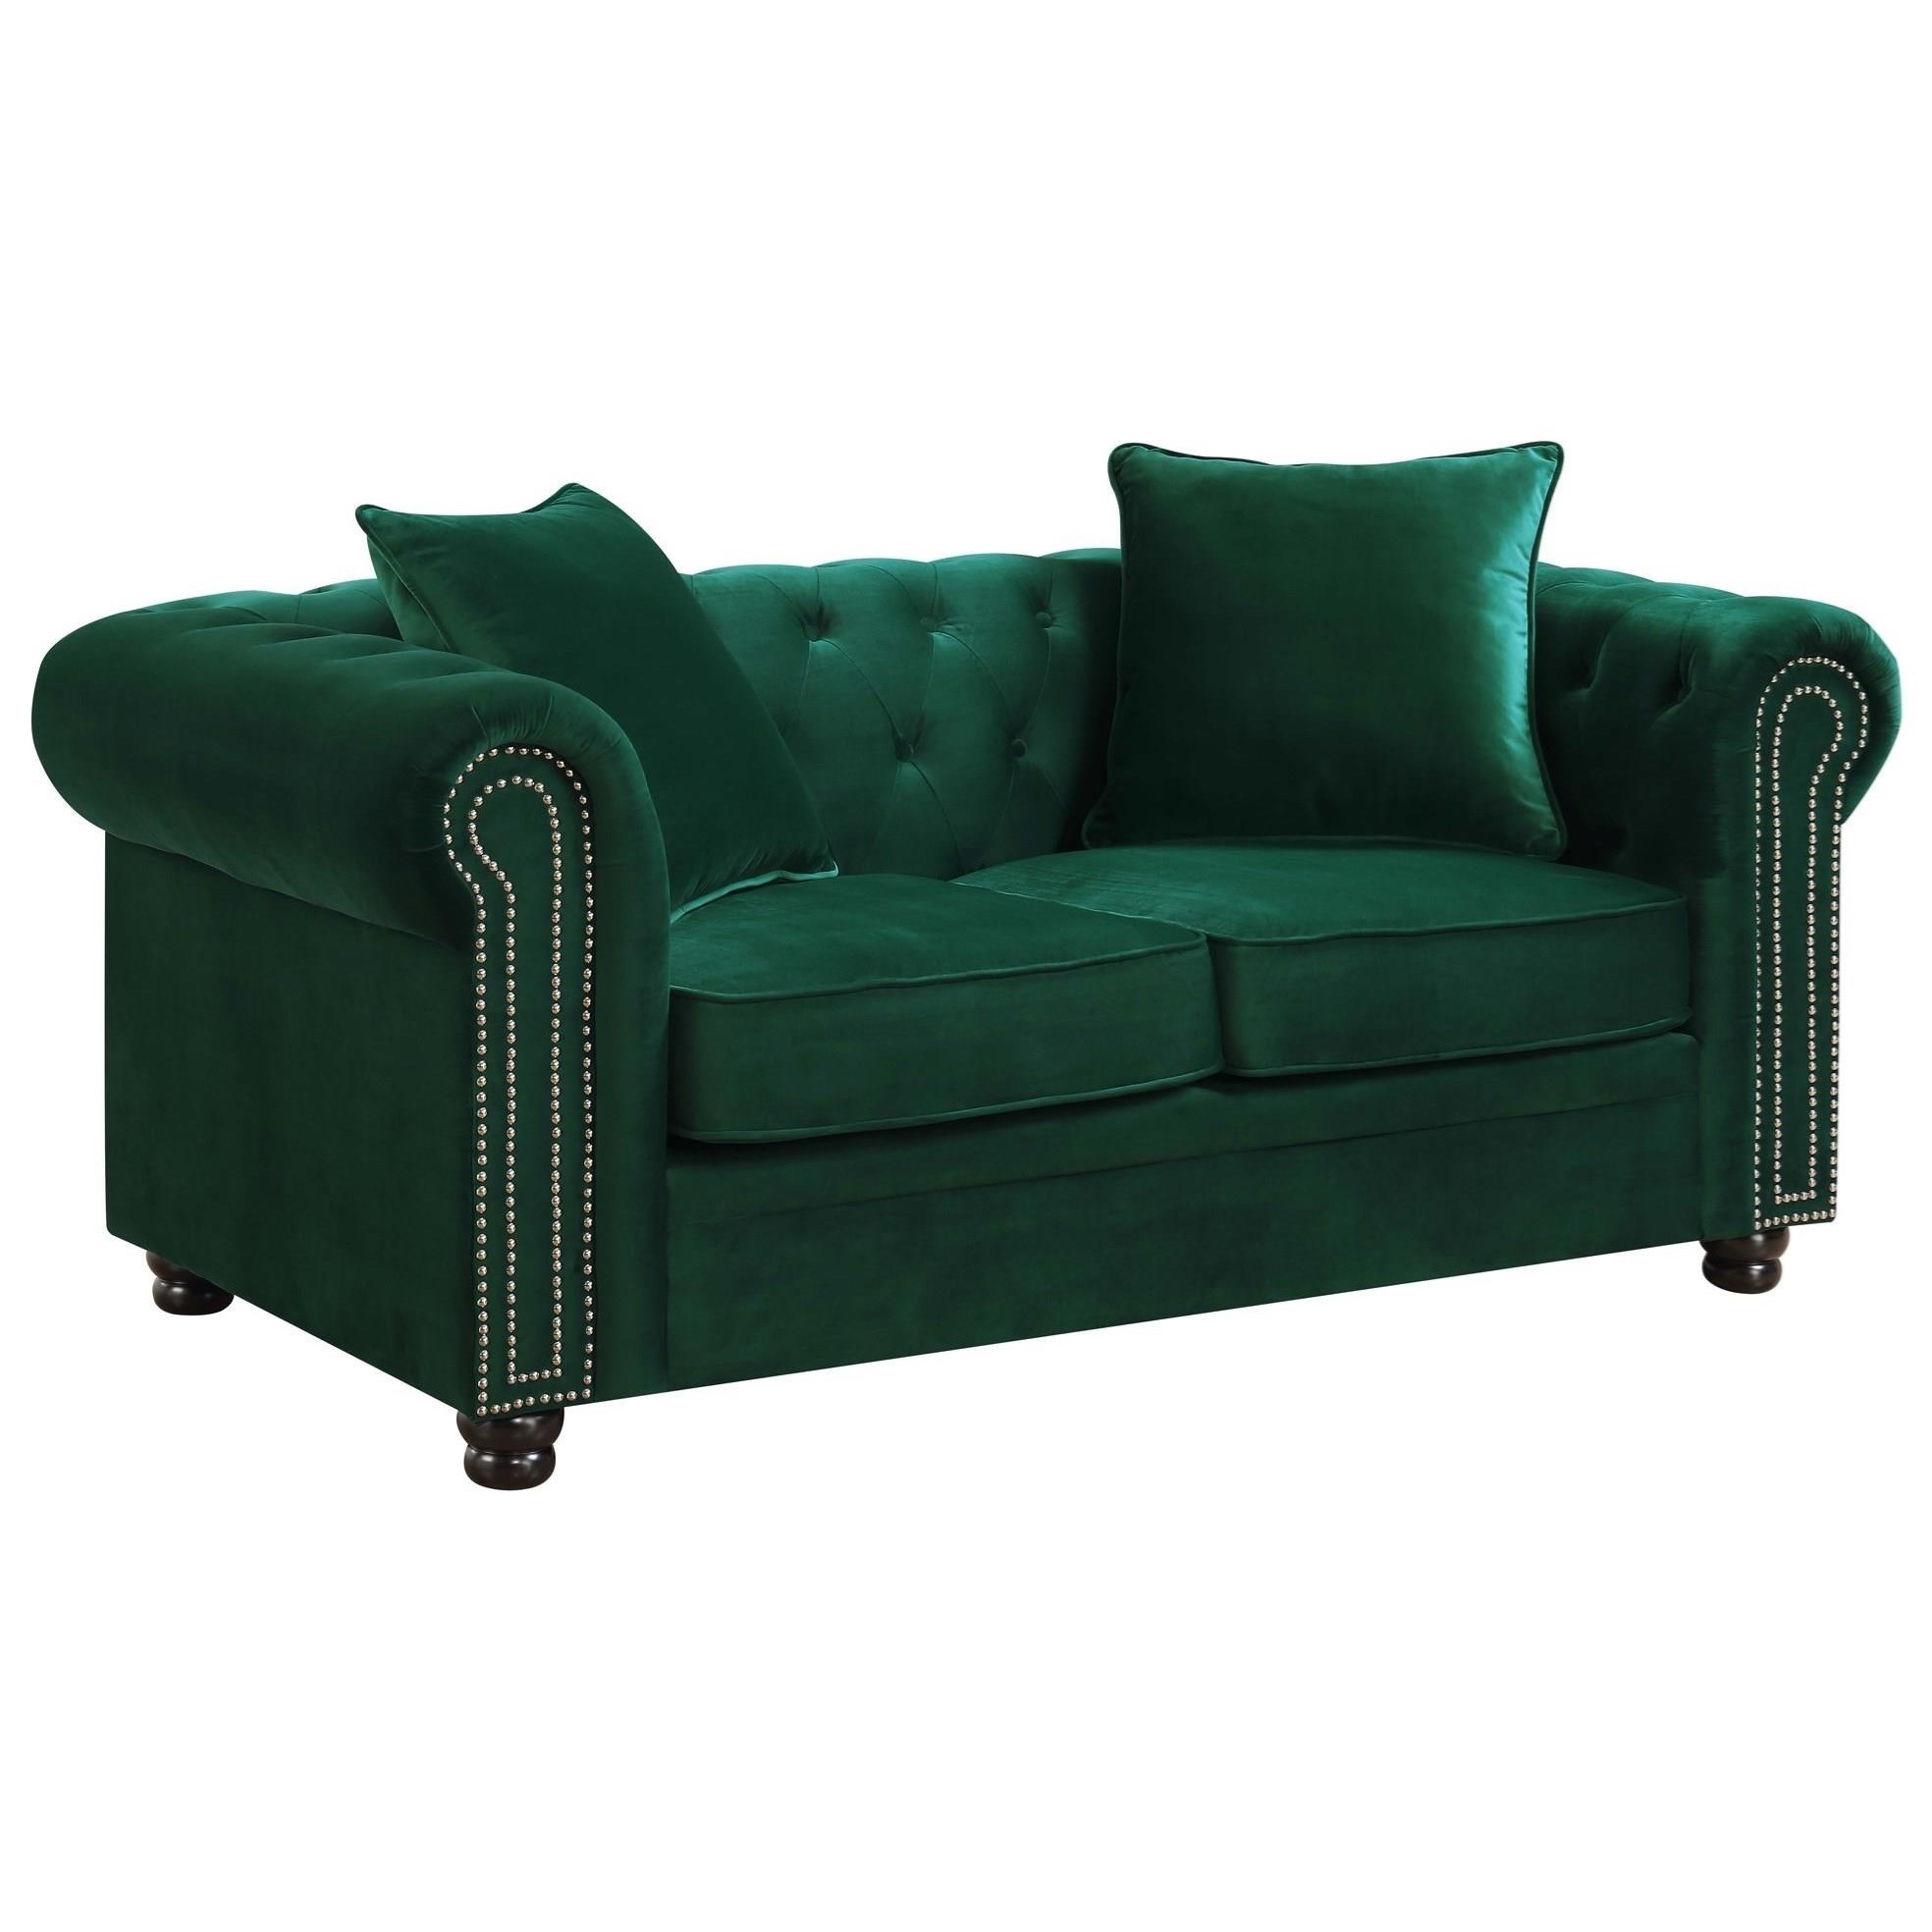 Marvelous Greenwich Transitional Chesterfield Loveseat With Nailhead Trim By Elements At Royal Furniture Onthecornerstone Fun Painted Chair Ideas Images Onthecornerstoneorg